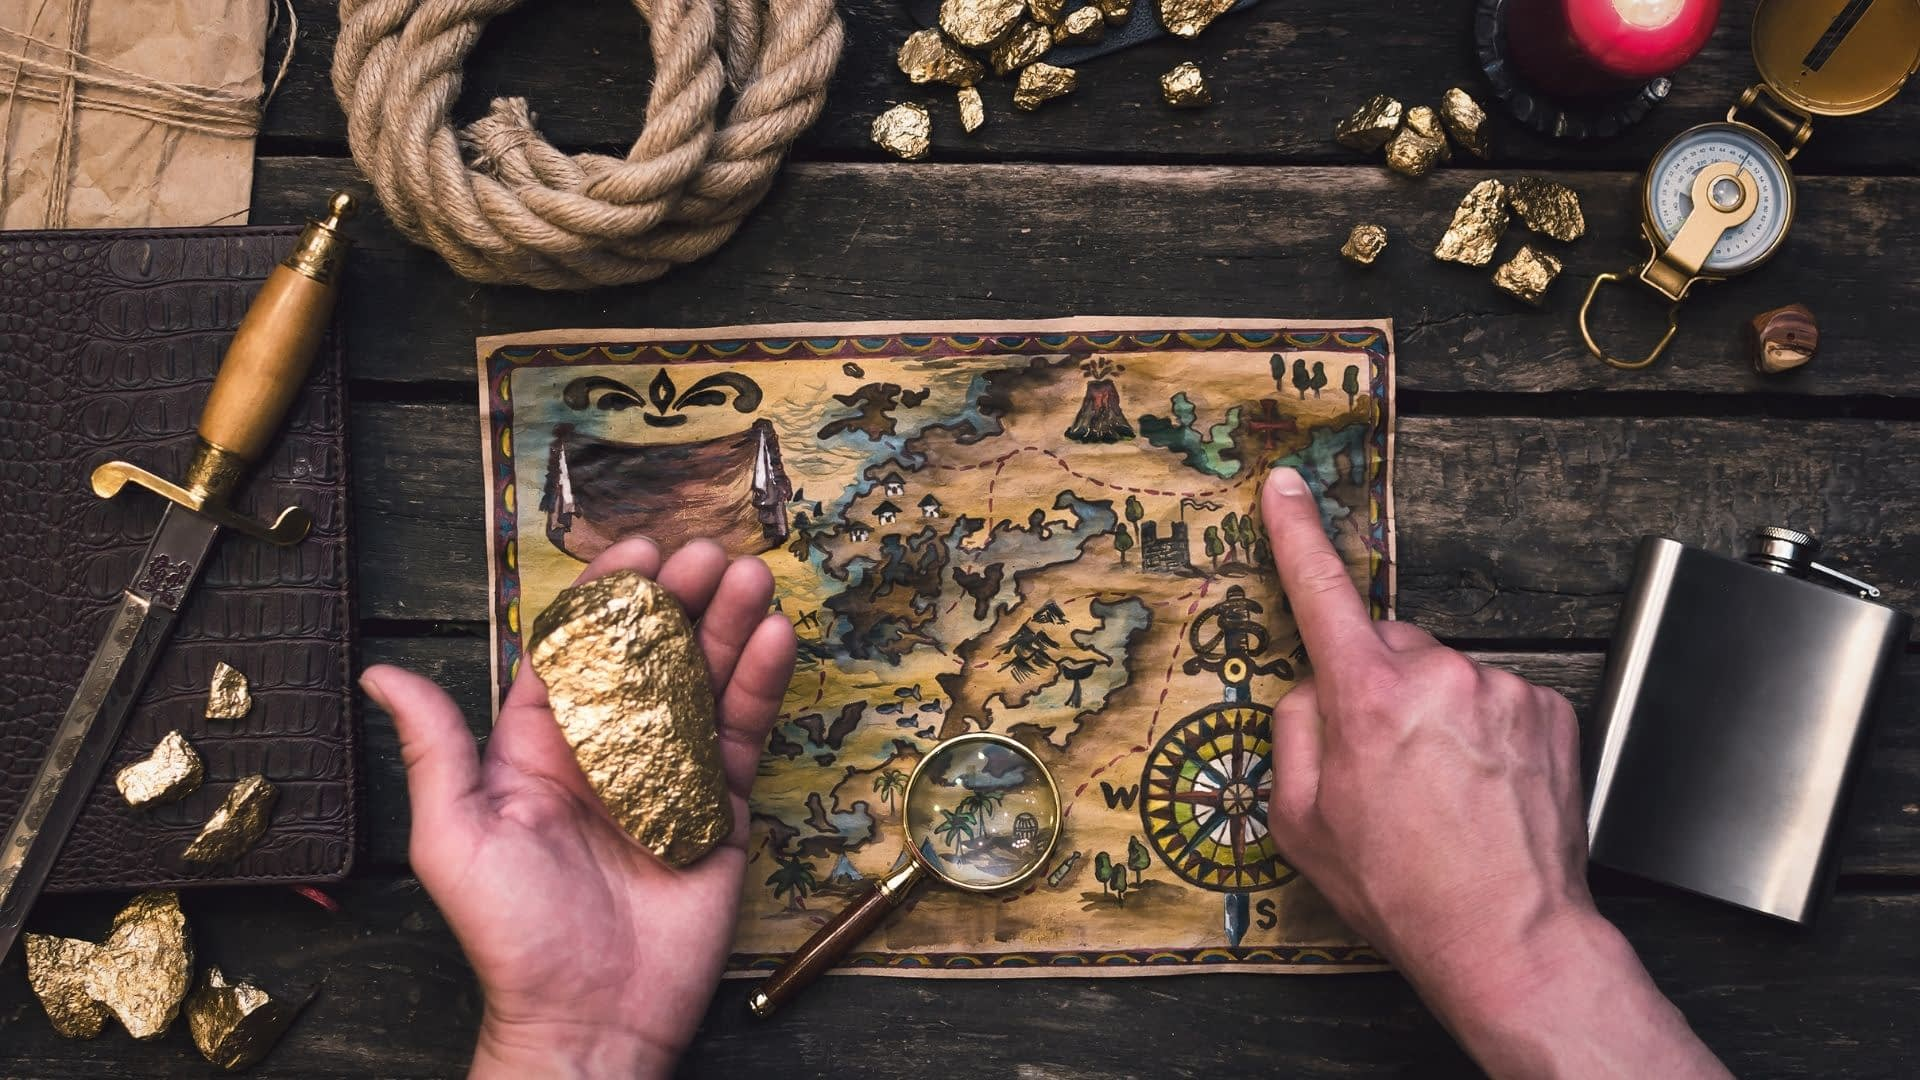 Treasure Mountain runs for about an hour, is intended for groups of between three and eight people, and is a lot of fun while providing plenty of problems to solve and challenges to overcome.